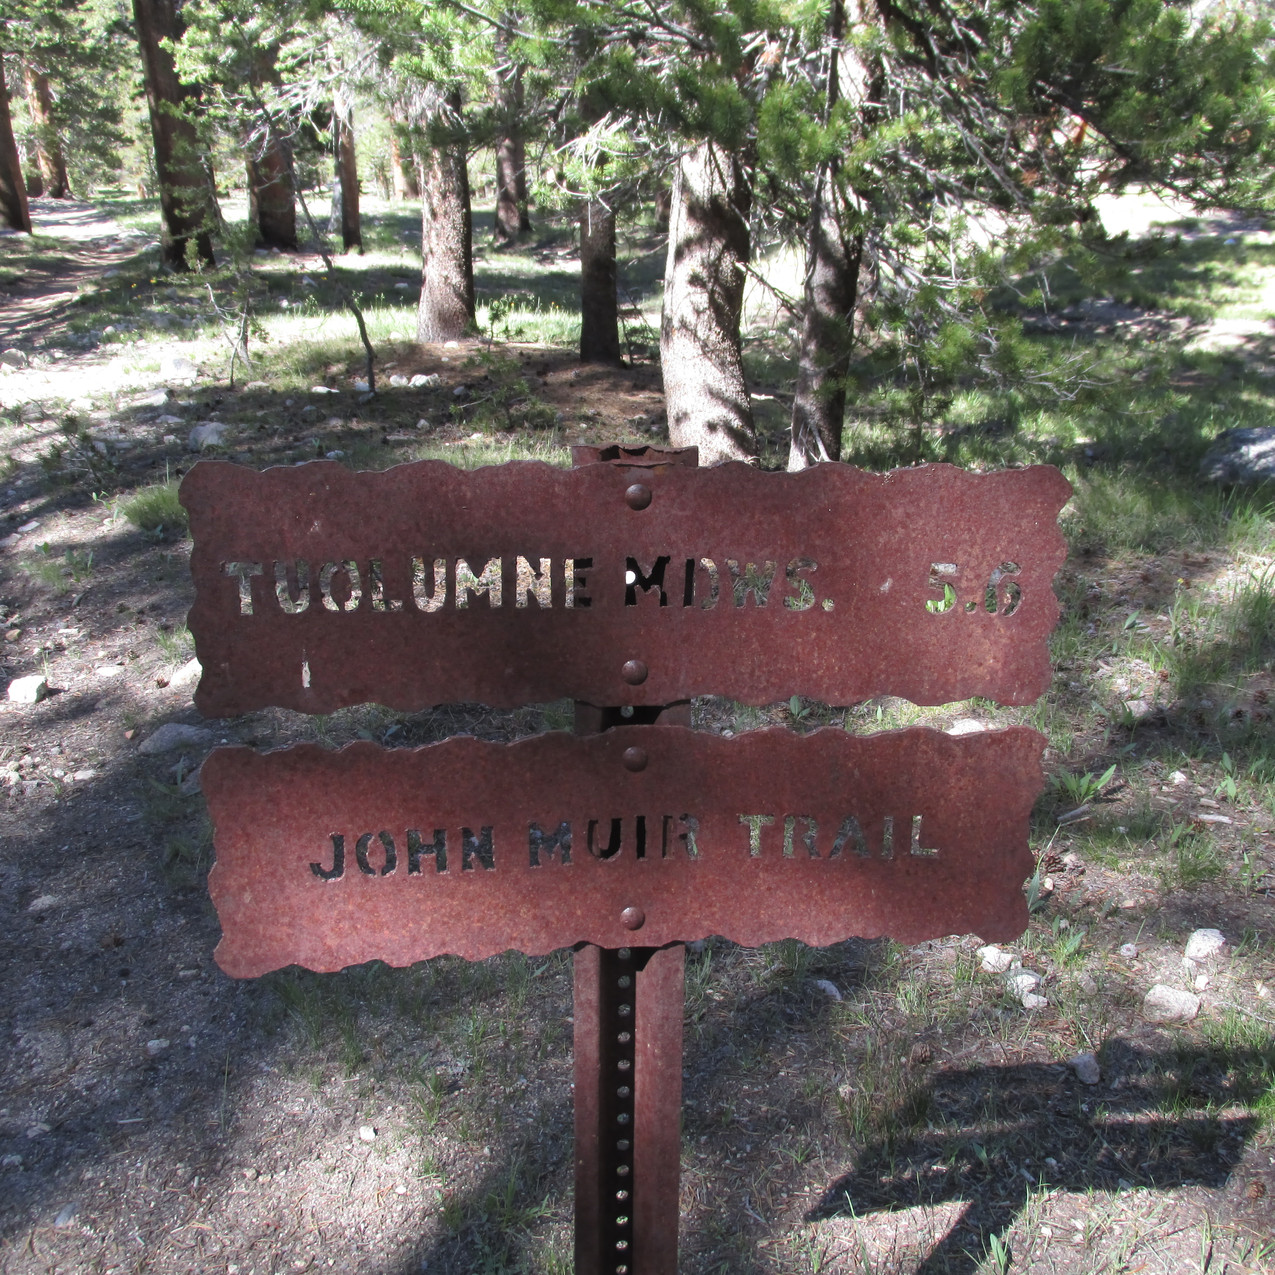 Yosemite had signs like this all over the place.  My uncle does better metal art.